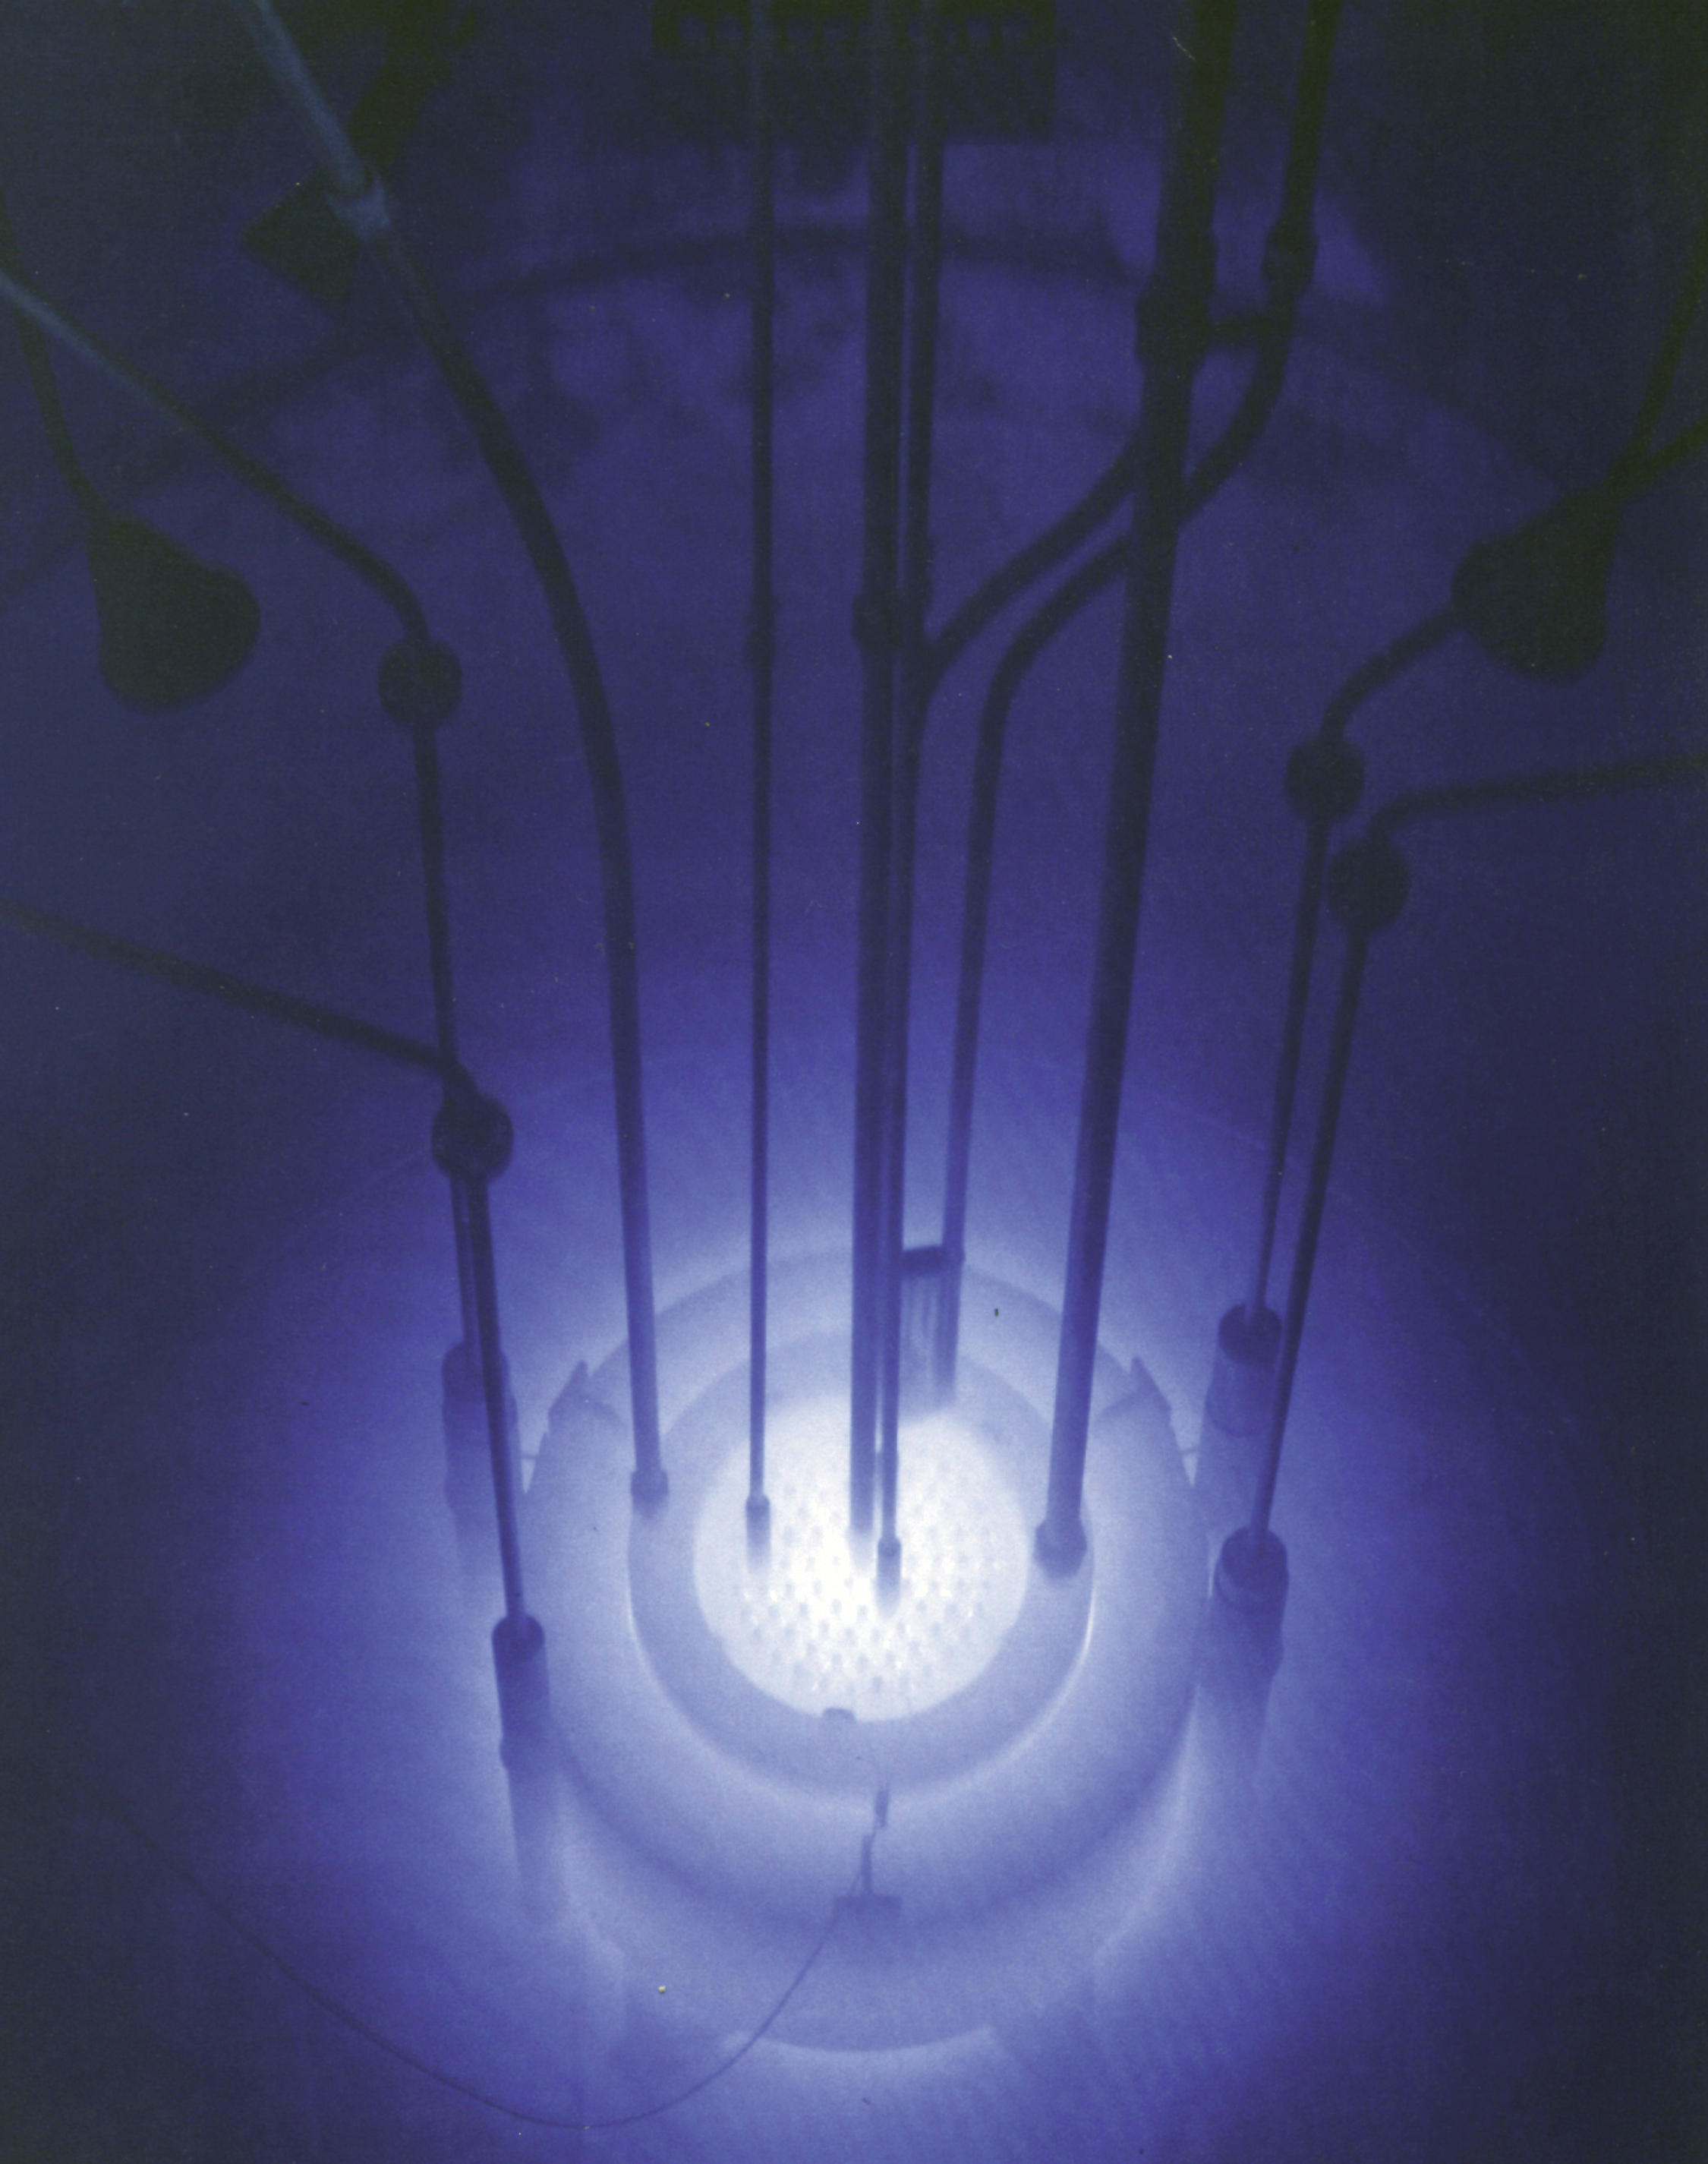 Chrenkov effect reactor